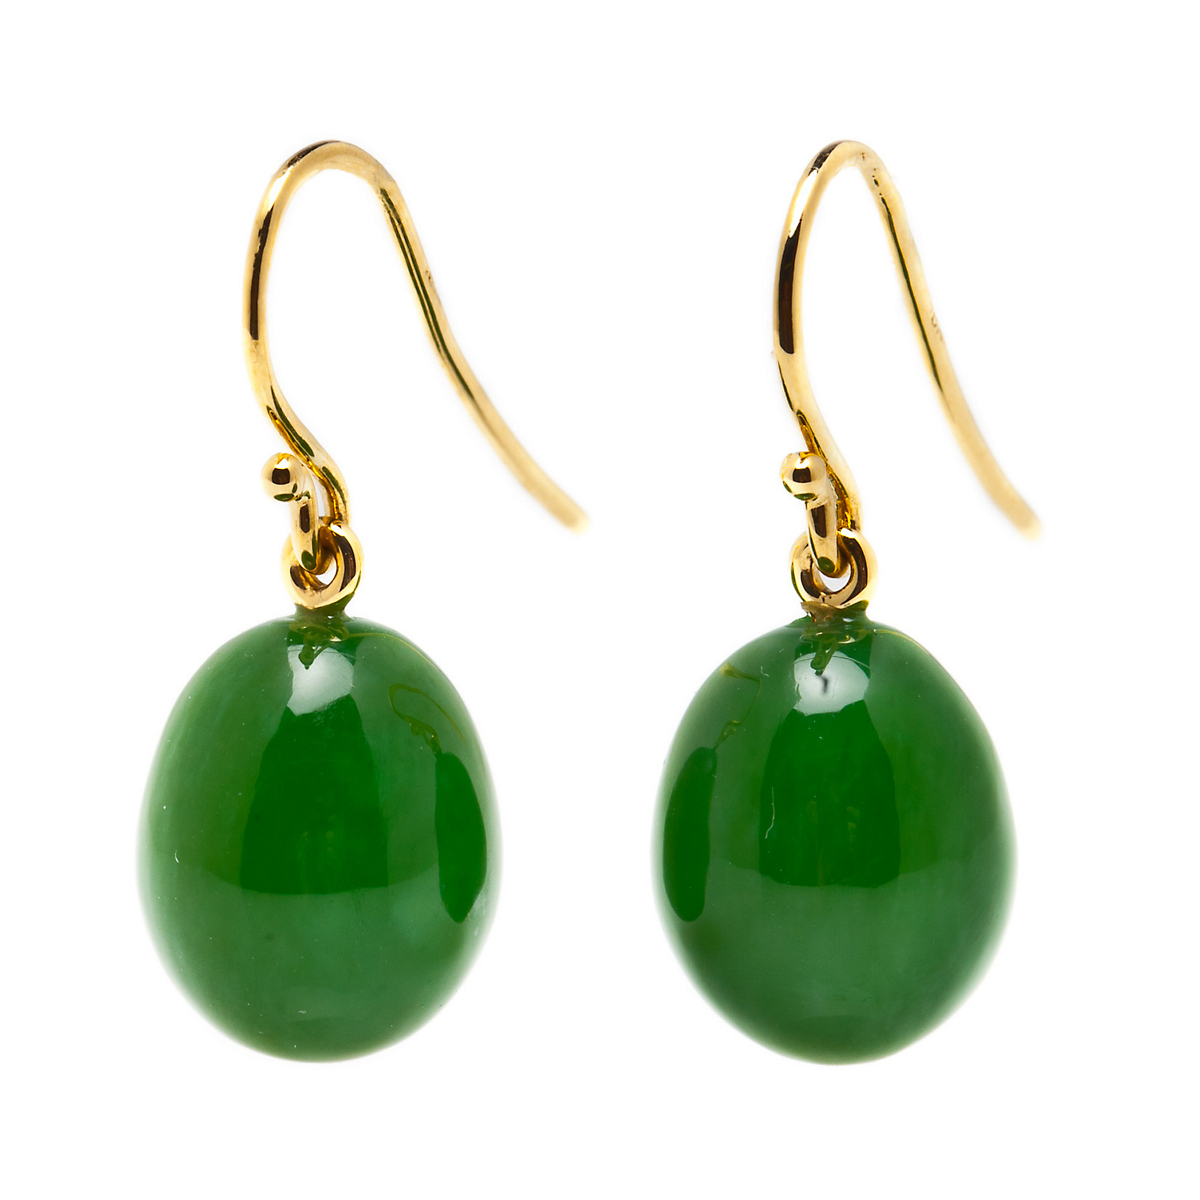 Gump's Green Nephrite Jade Drop Earrings